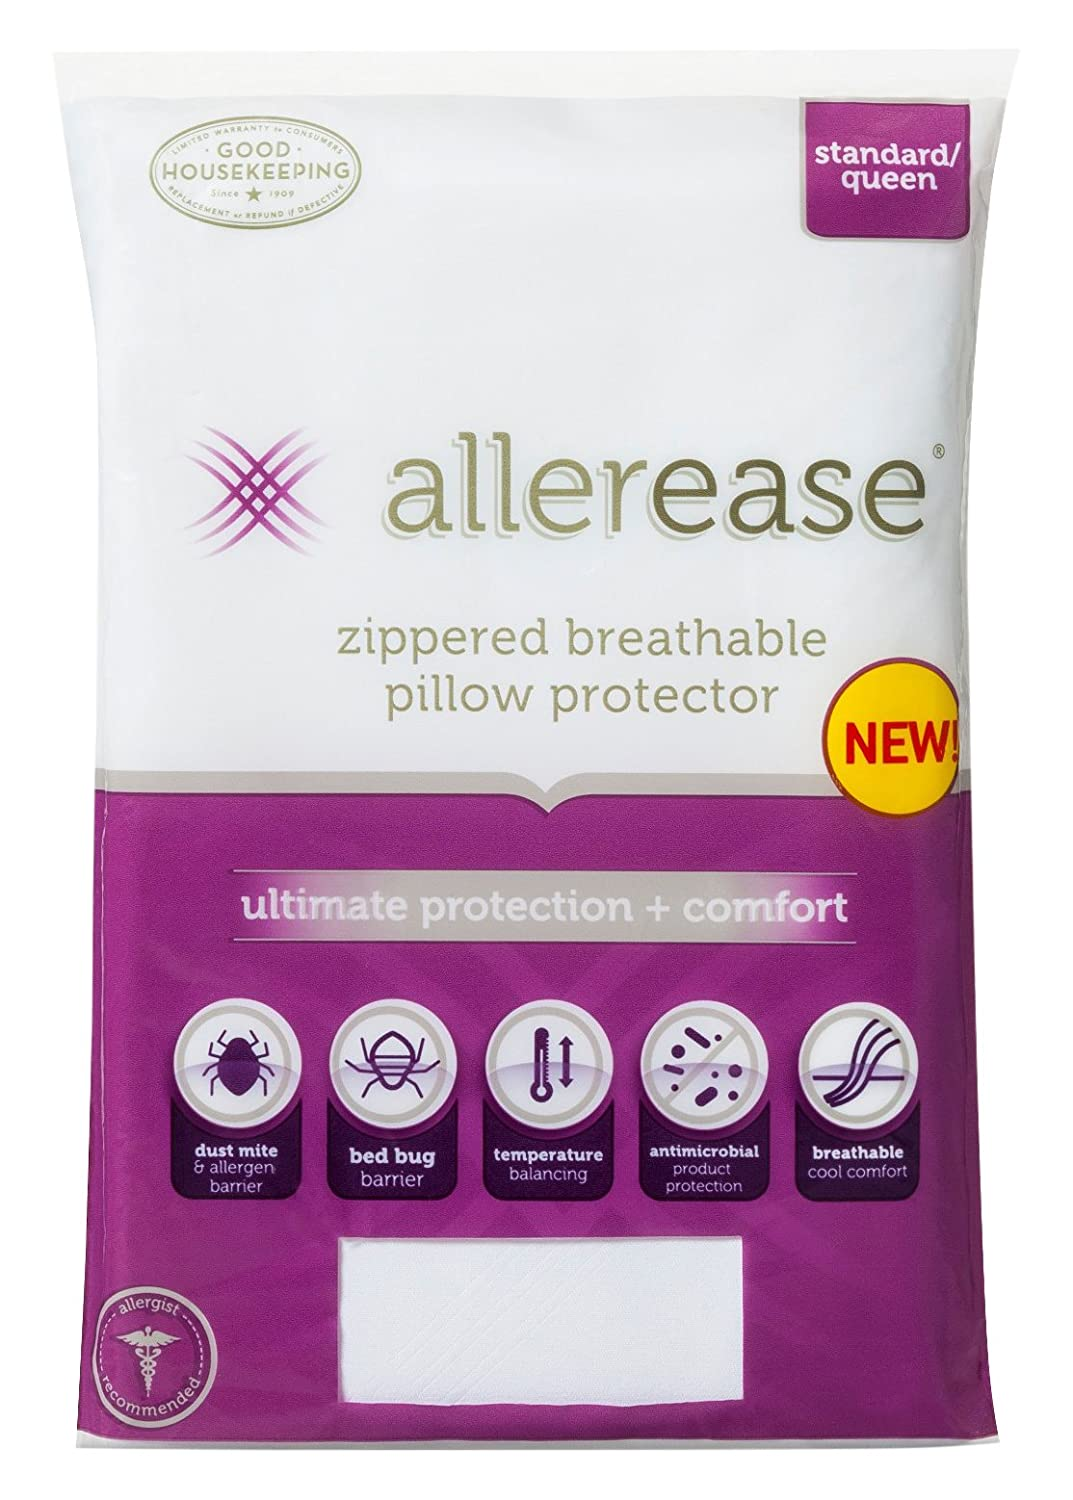 AllerEase Ultimate Protection and Comfort Temperature Balancing Pillow Protector – Zippered Pillow Protector, Allergist Recommended, Prevent Collection of Dust Mites and Other Allergens, King American Textile 59336AMZ